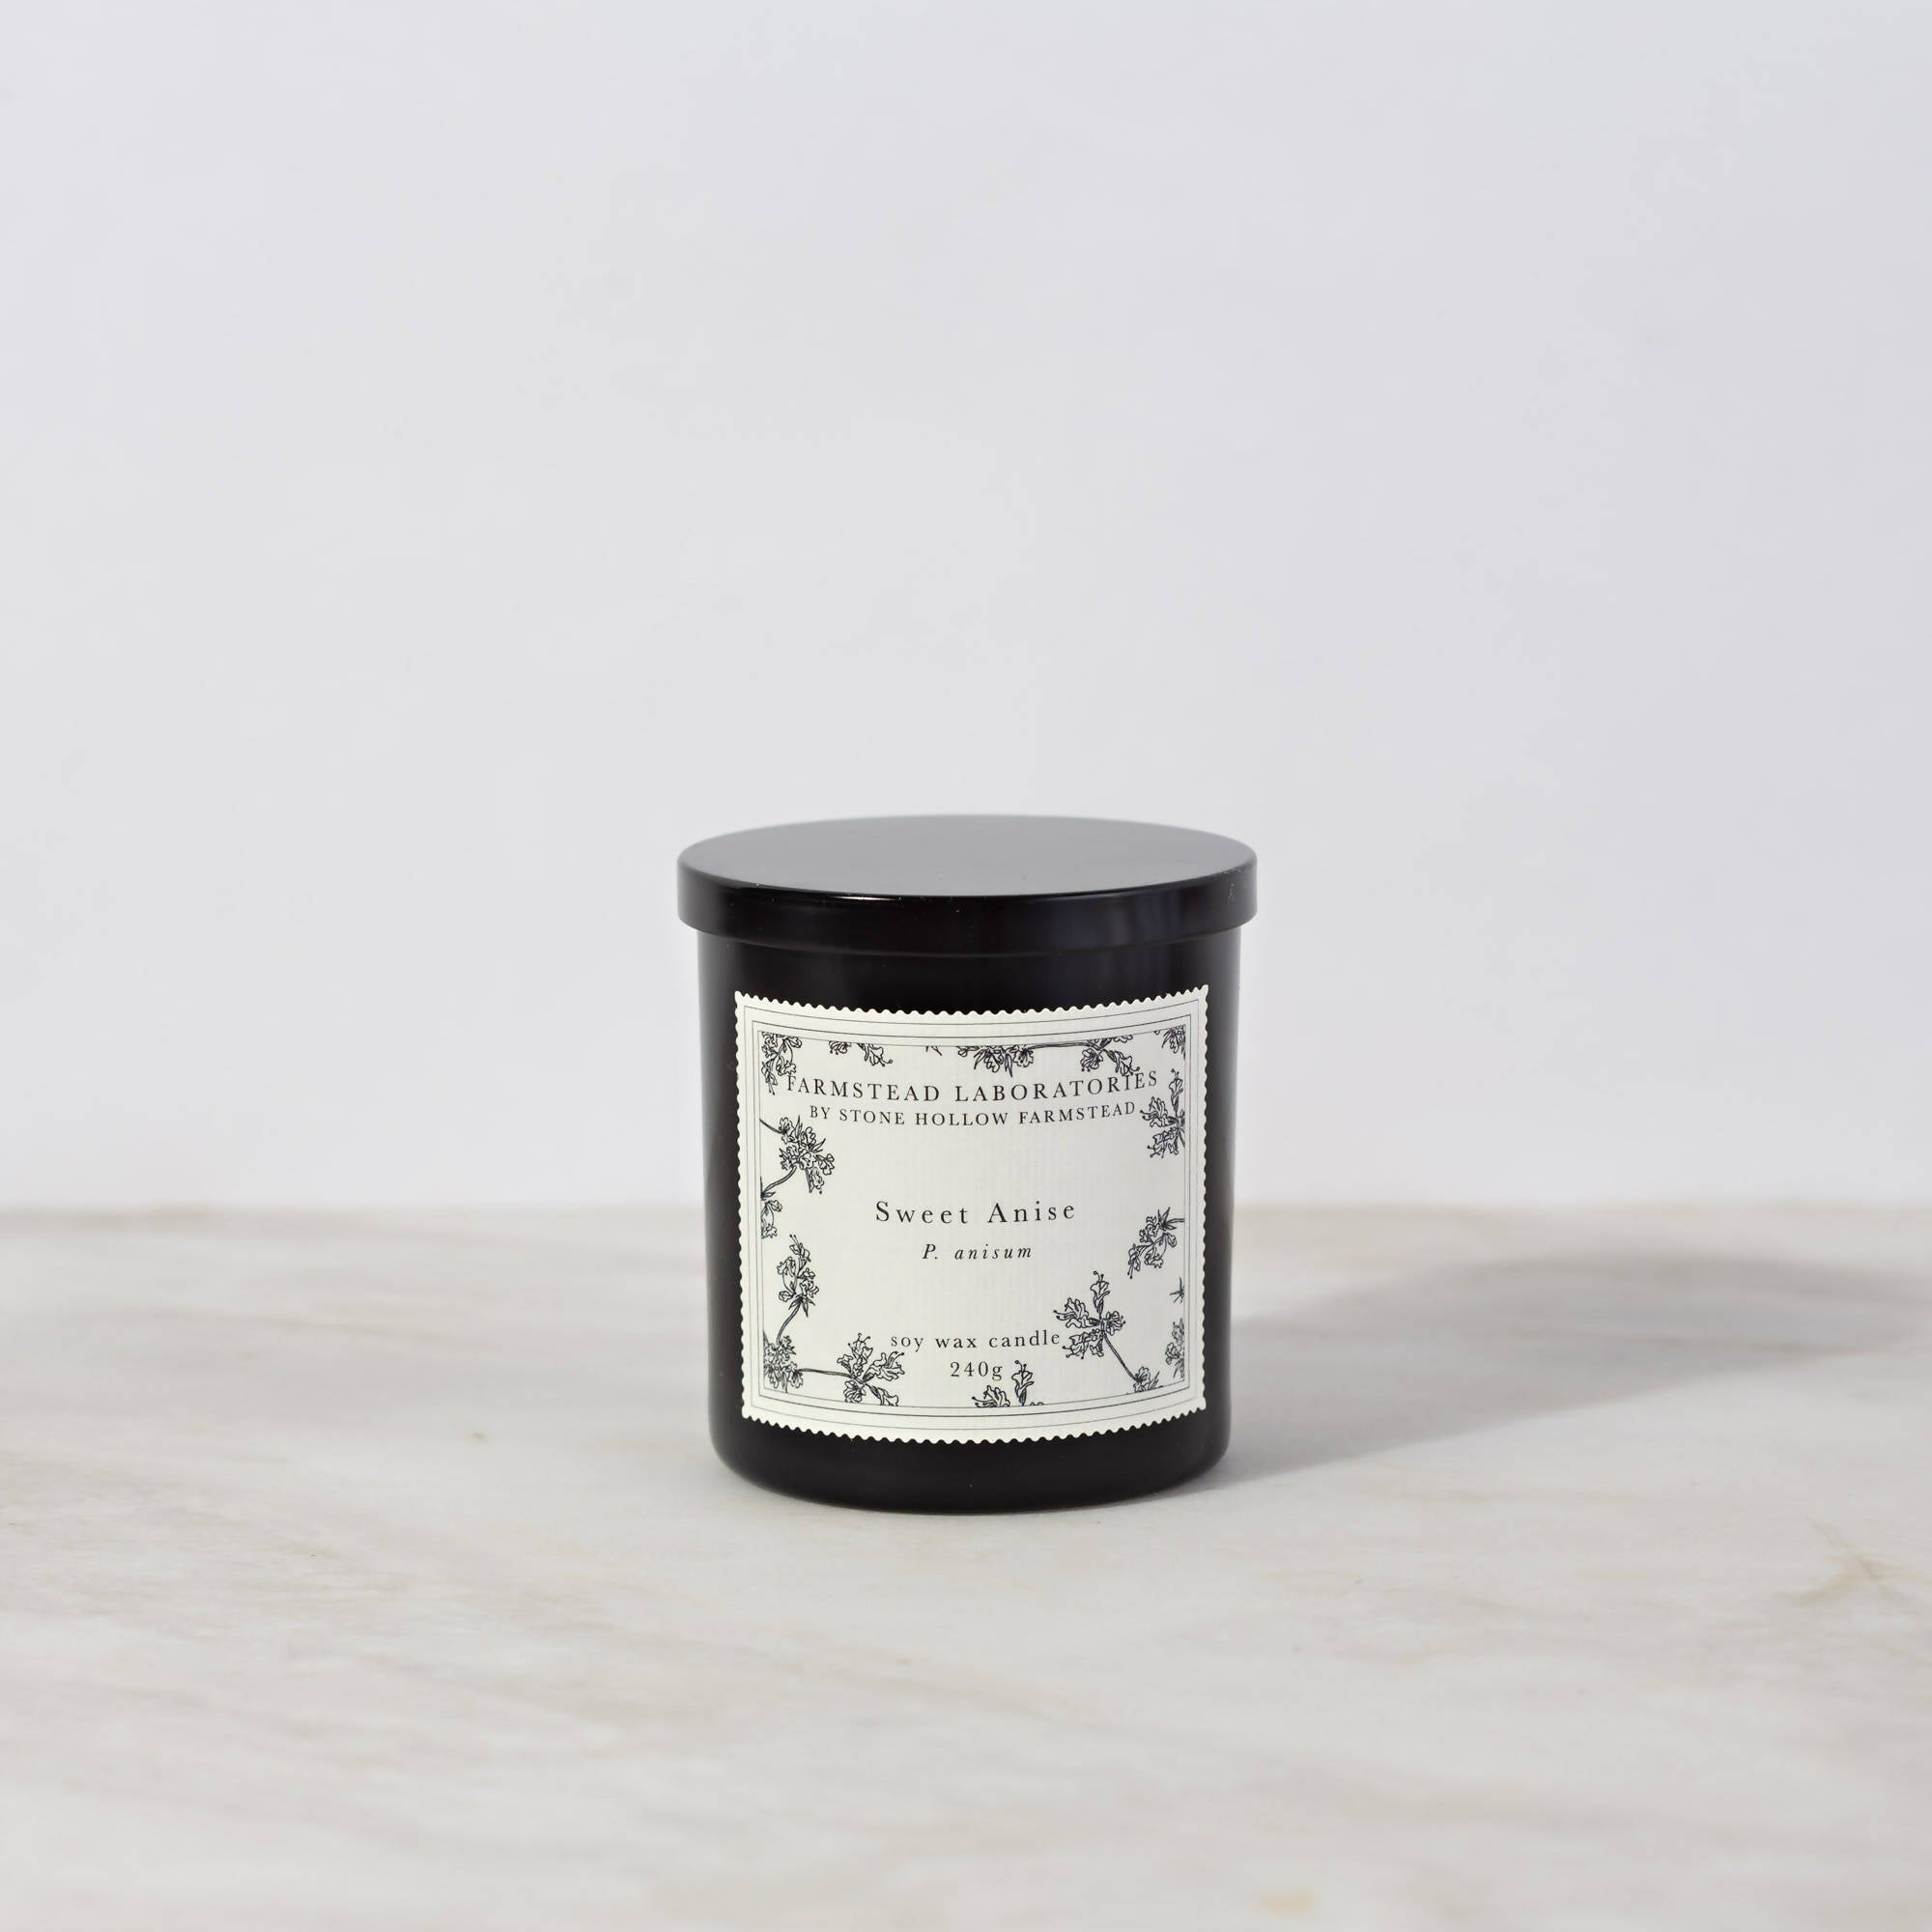 BOTANICAL SOY WAX CANDLE / SWEET ANISE